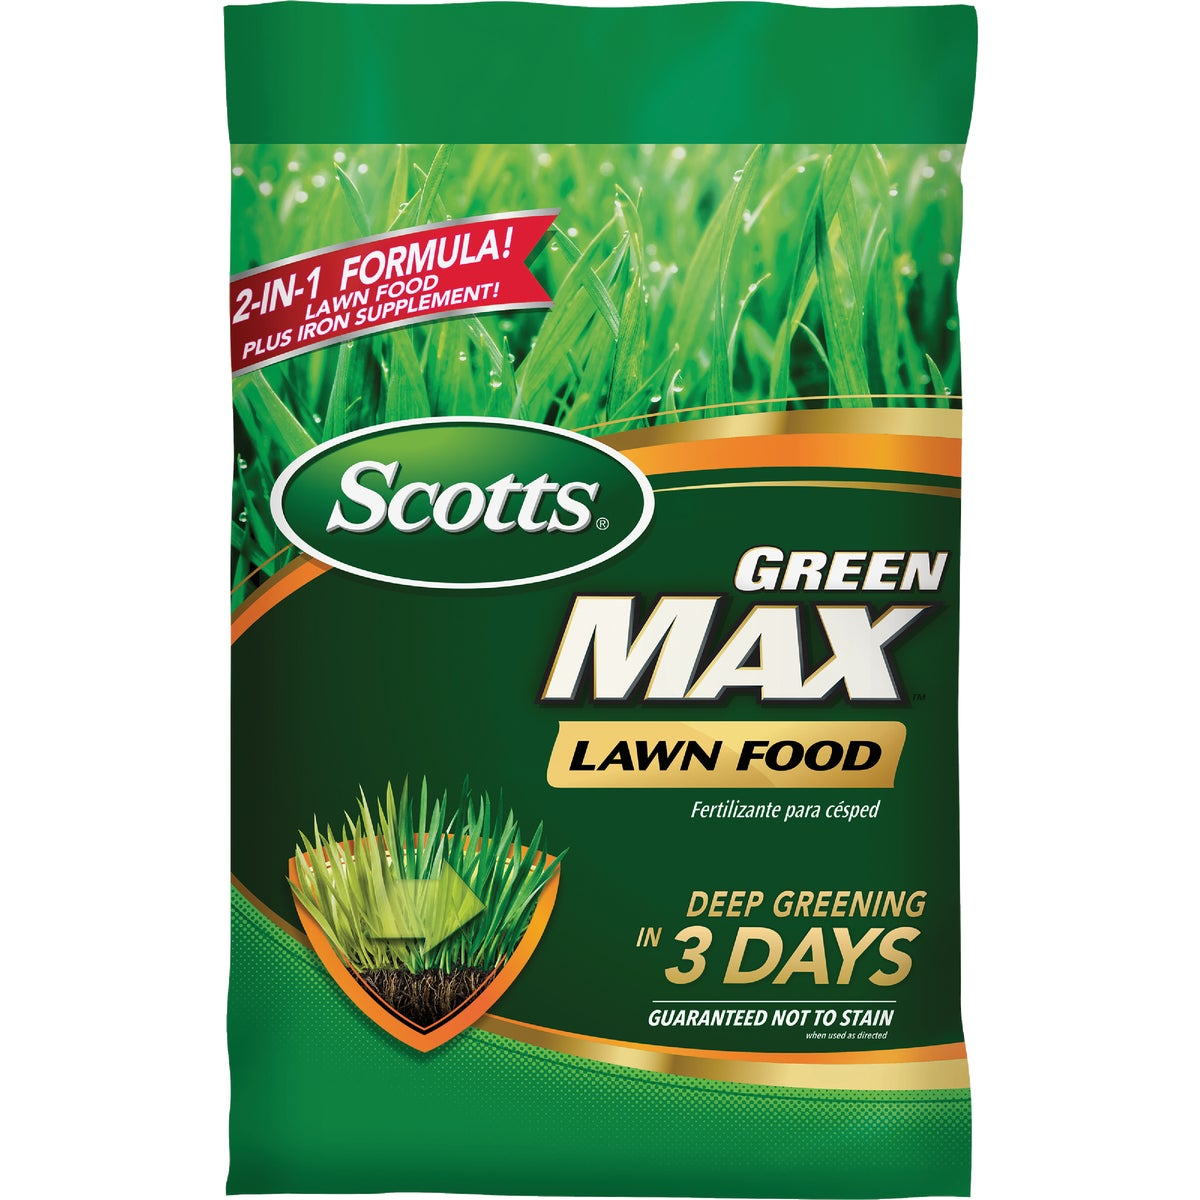 The Scotts Co. 5M GREEN MAX FERTILIZER 45100